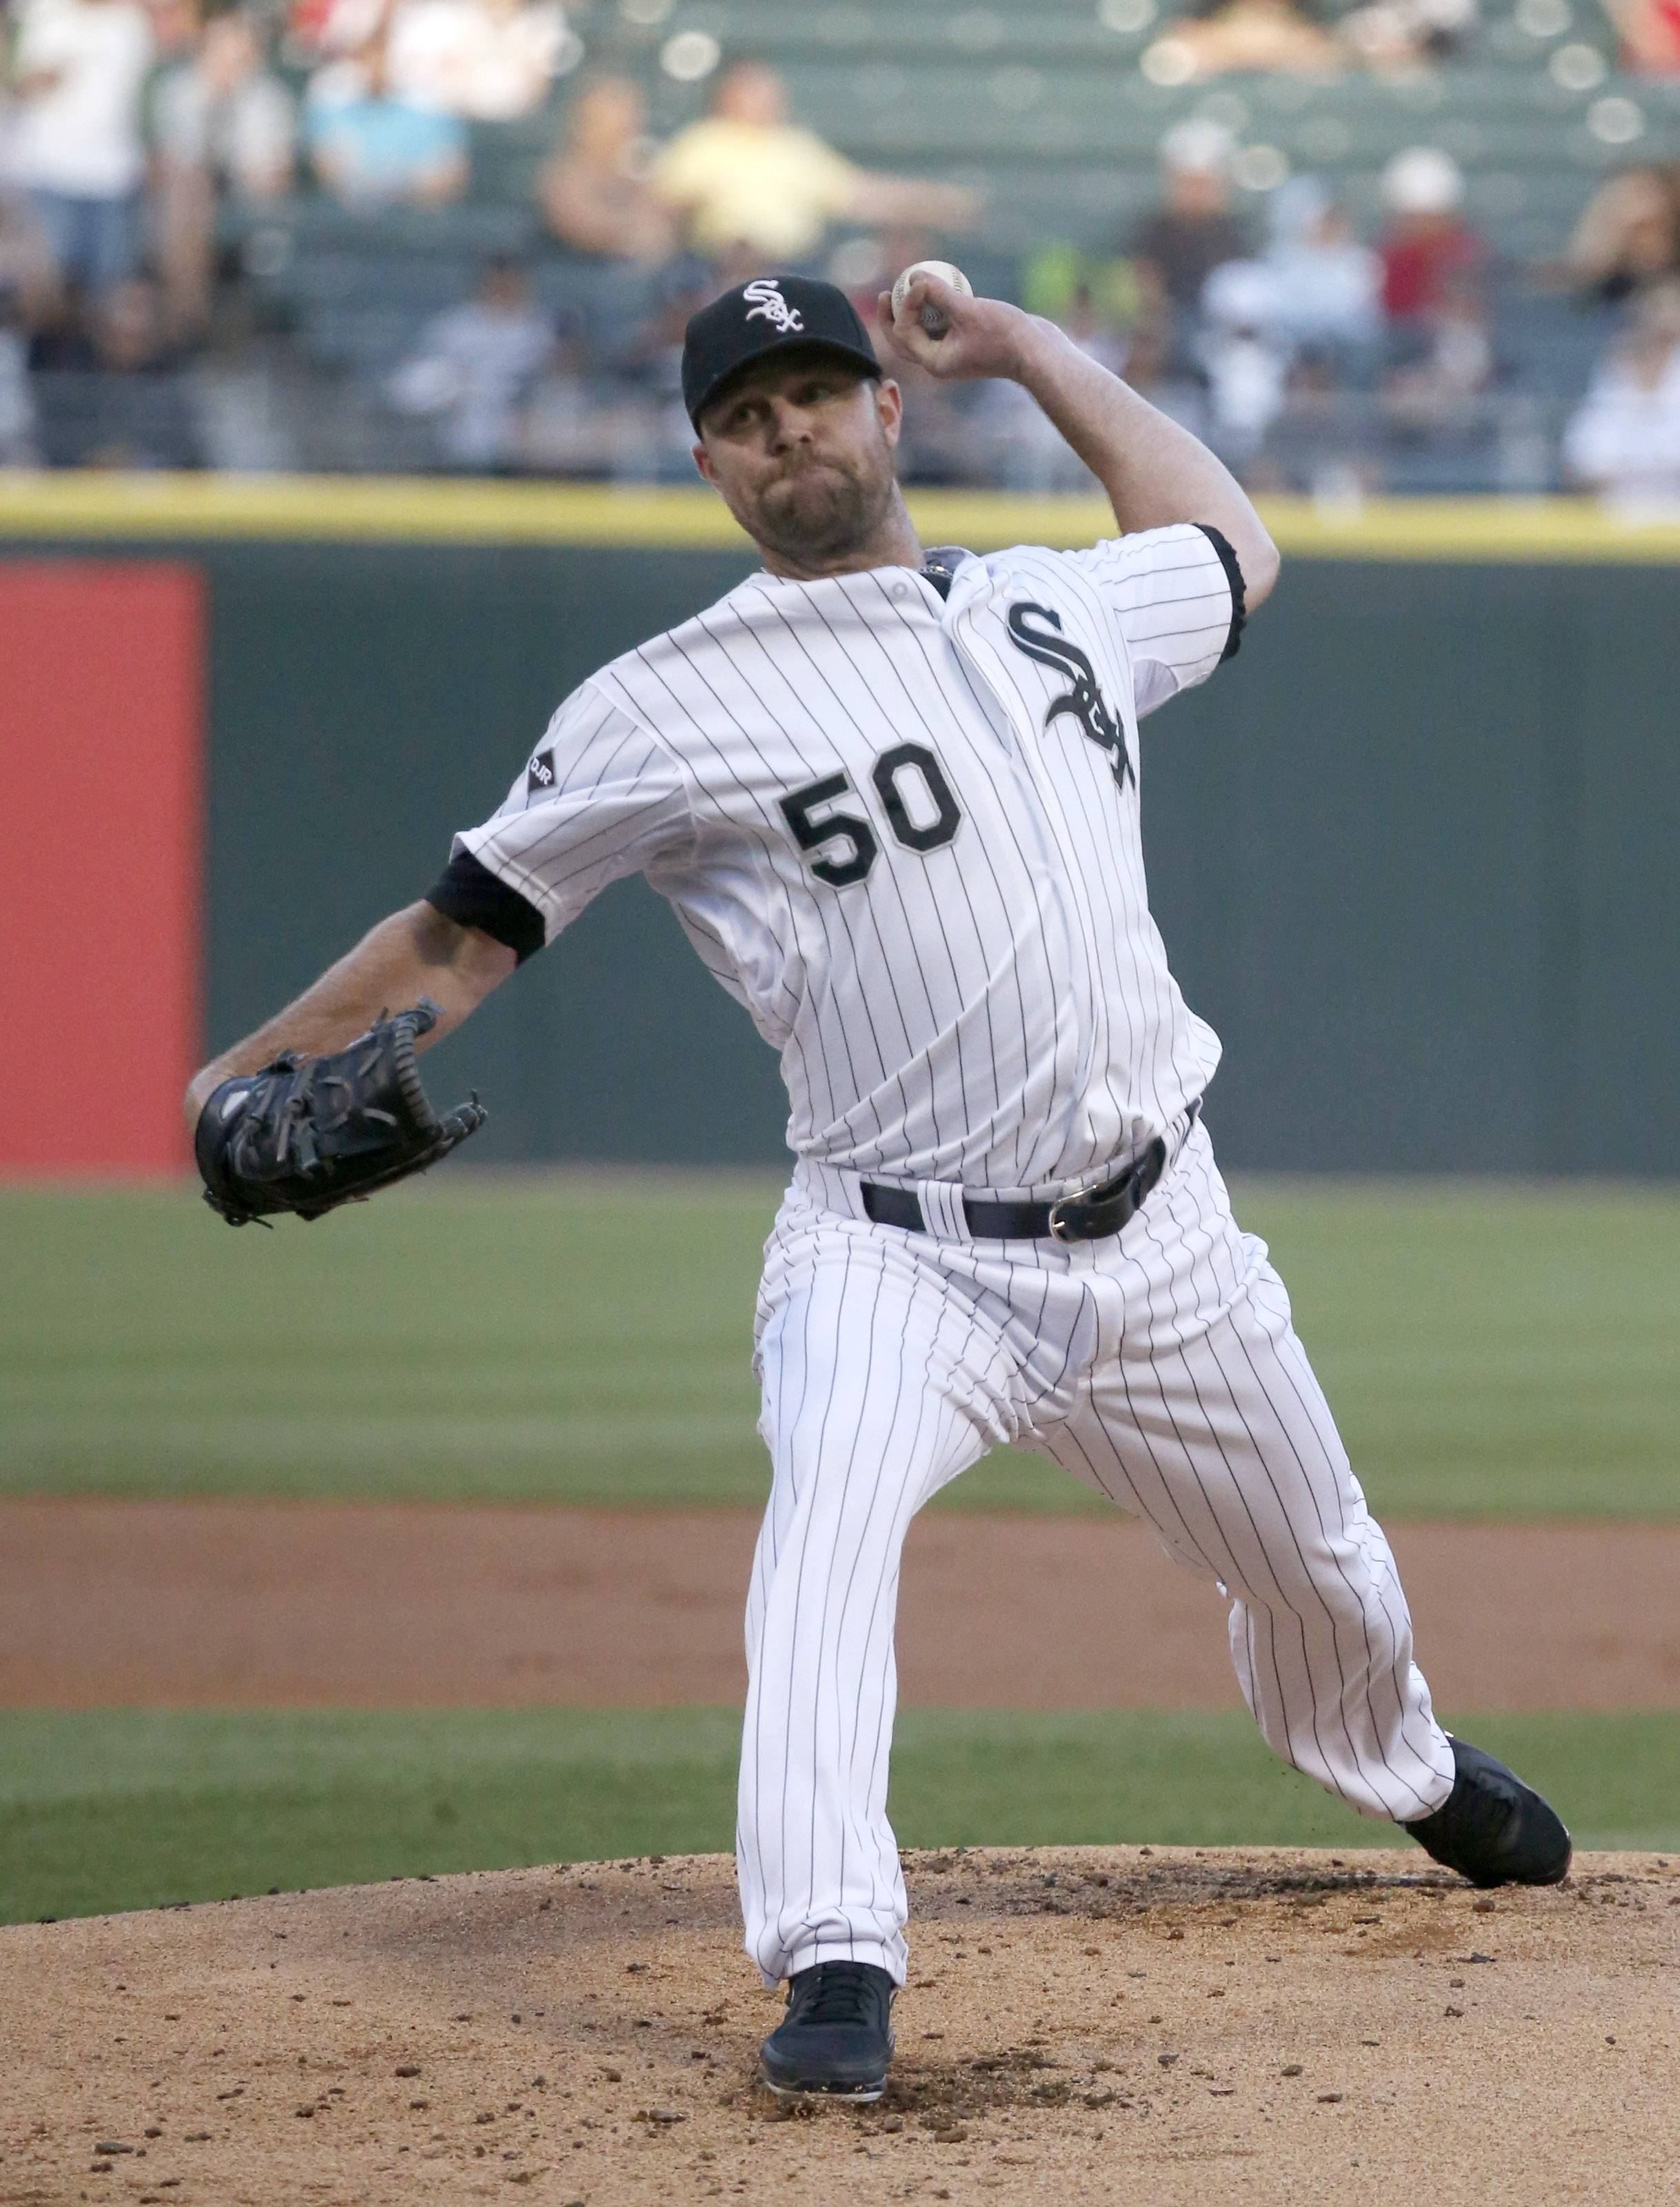 White Sox starter John Danks (3-5) followed an impressive outing against the Yankees with seven effective innings against the Padres. Danks allowed two runs and scattered eight hits. He struck out four and walked one.